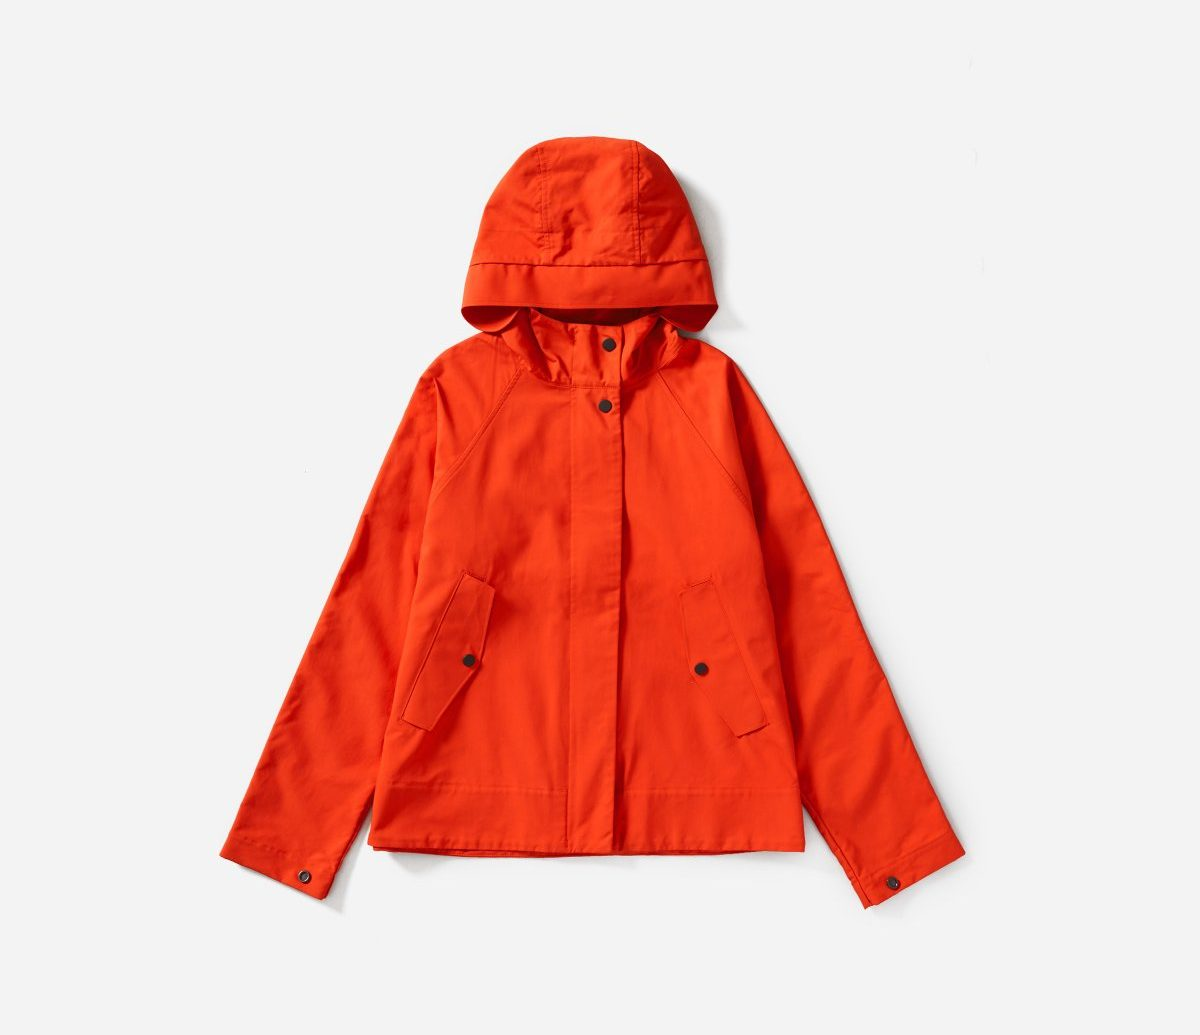 The Cropped City Anorak